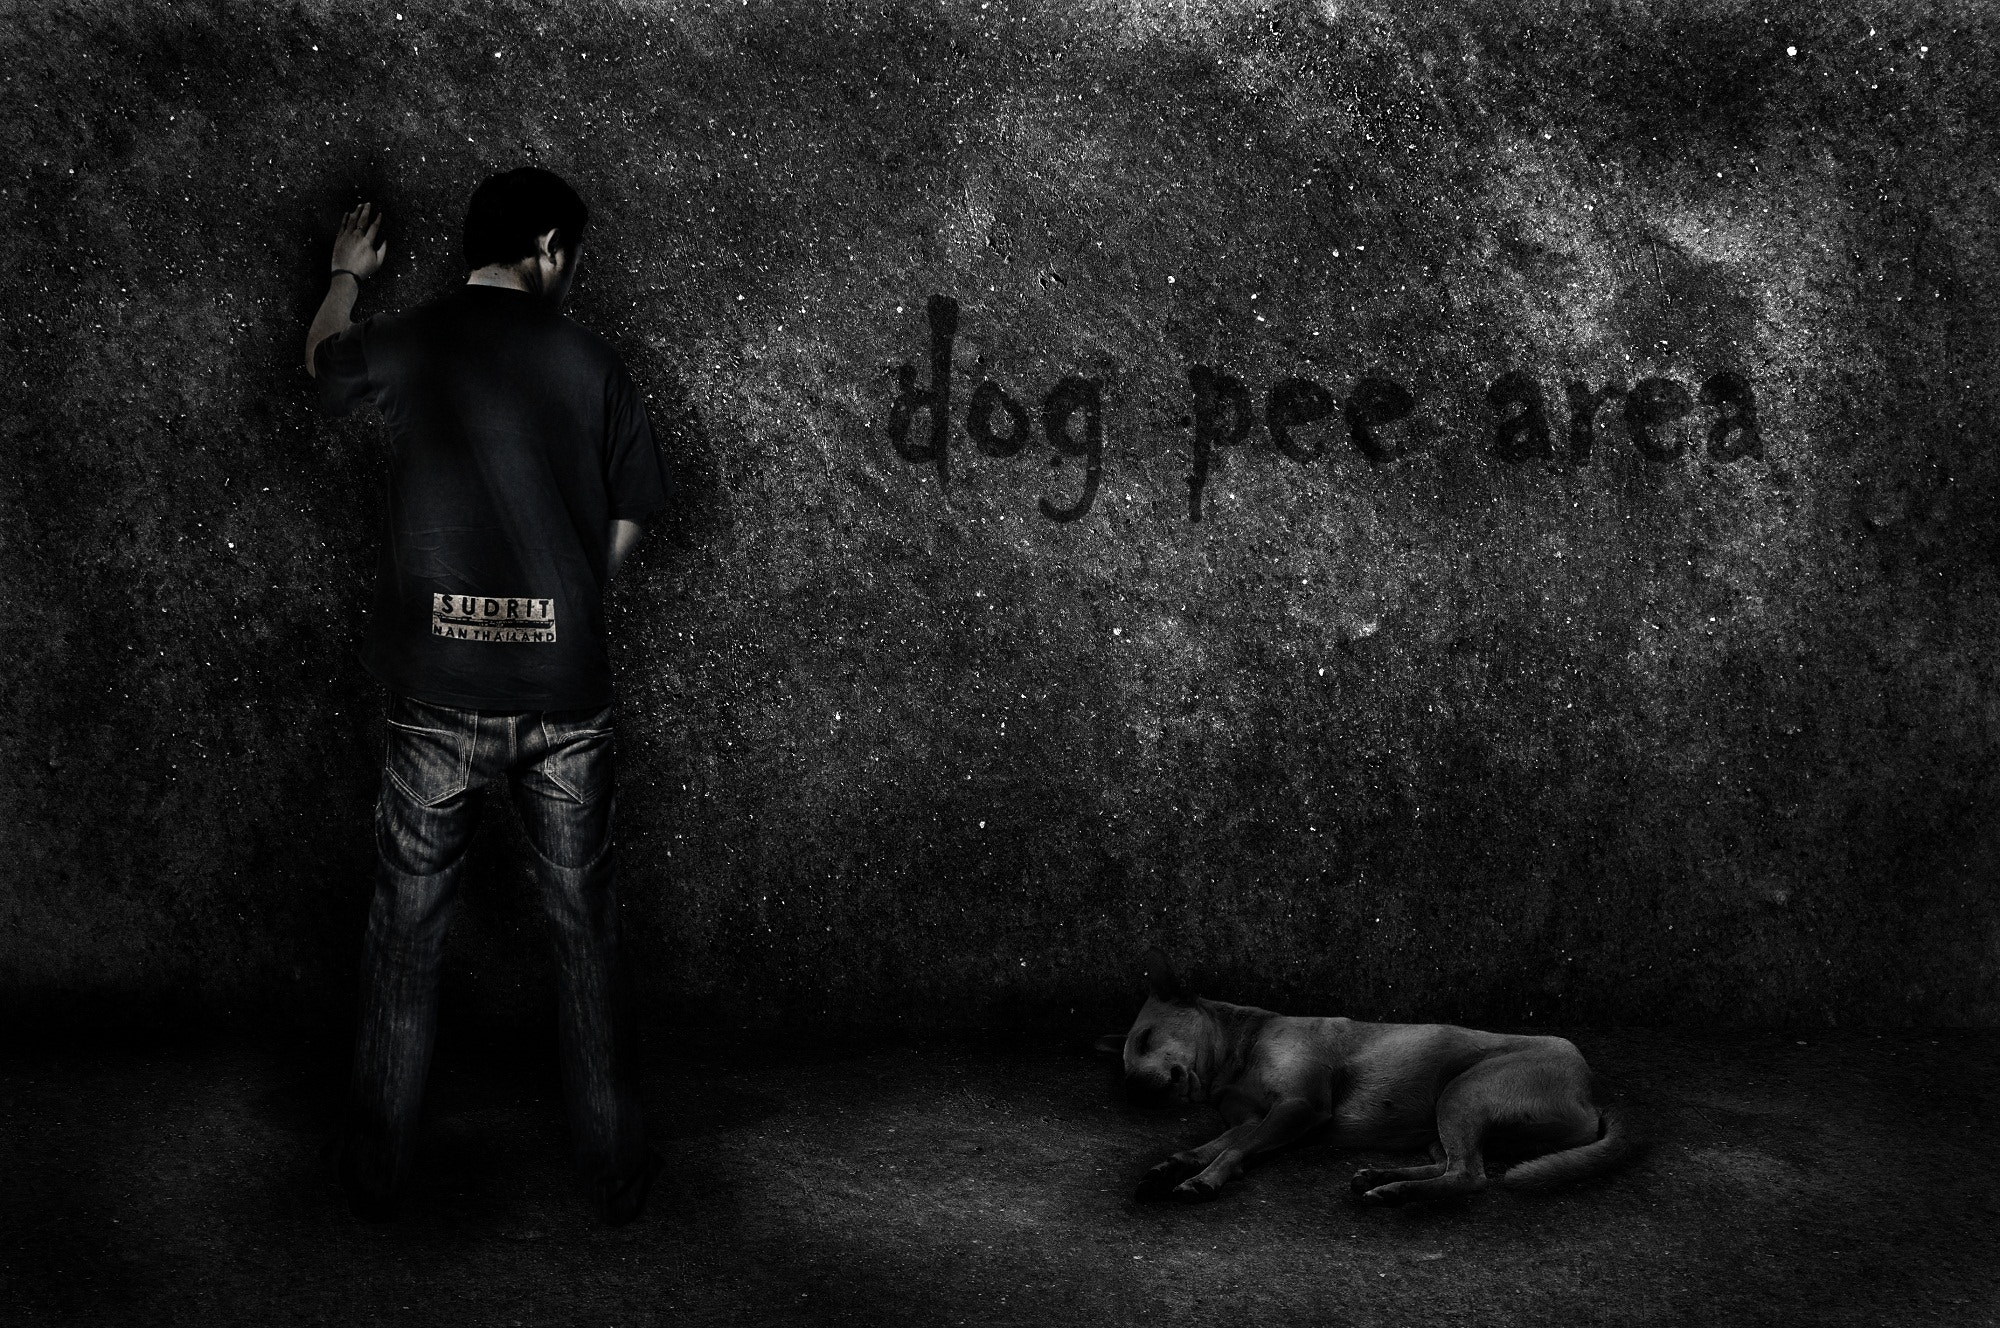 Photograph dog pee area by Attapon Ramkomut on 500px